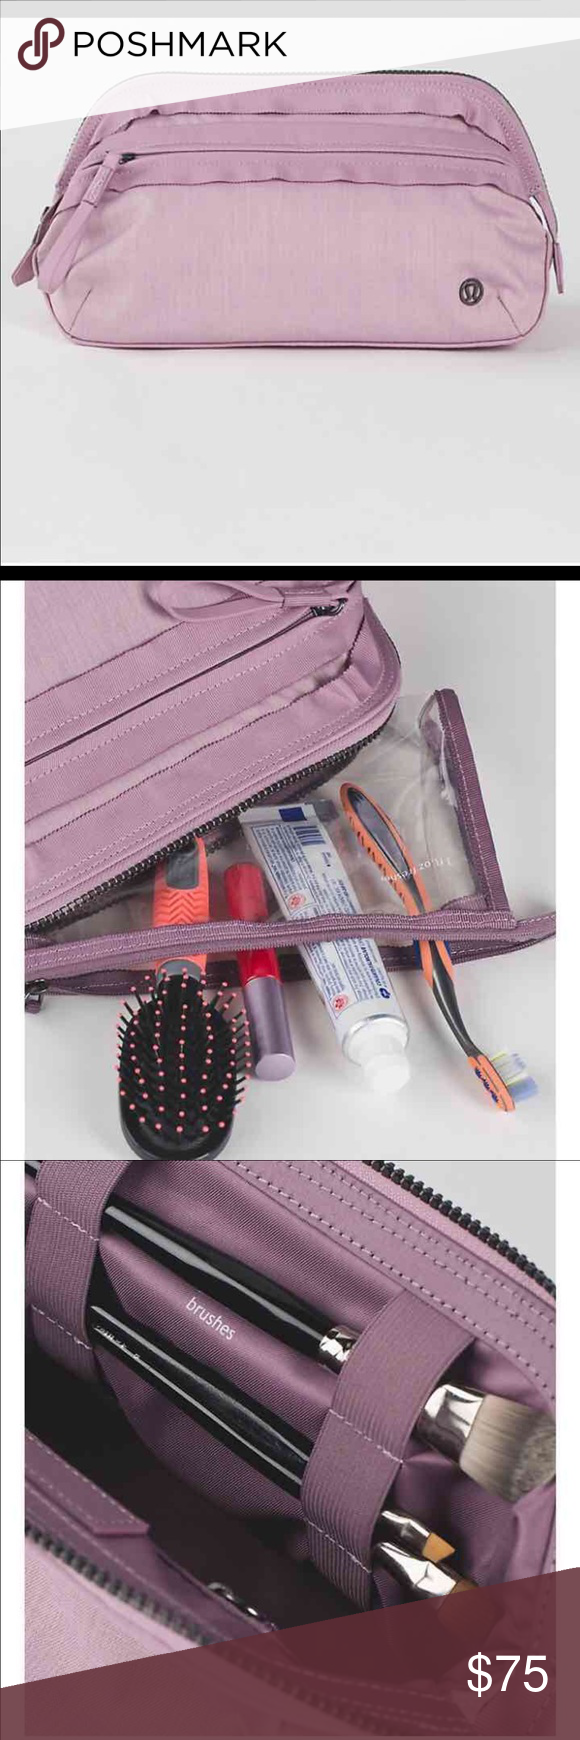 Lululemon Don't Sweat It Kit Don't sweat it—this bag has room to fit the full-sized cosmetics you want after a sweaty workout. Fabric is water-repellent, durable, and easy to wipe clean lululemon athletica Bags Cosmetic Bags & Cases